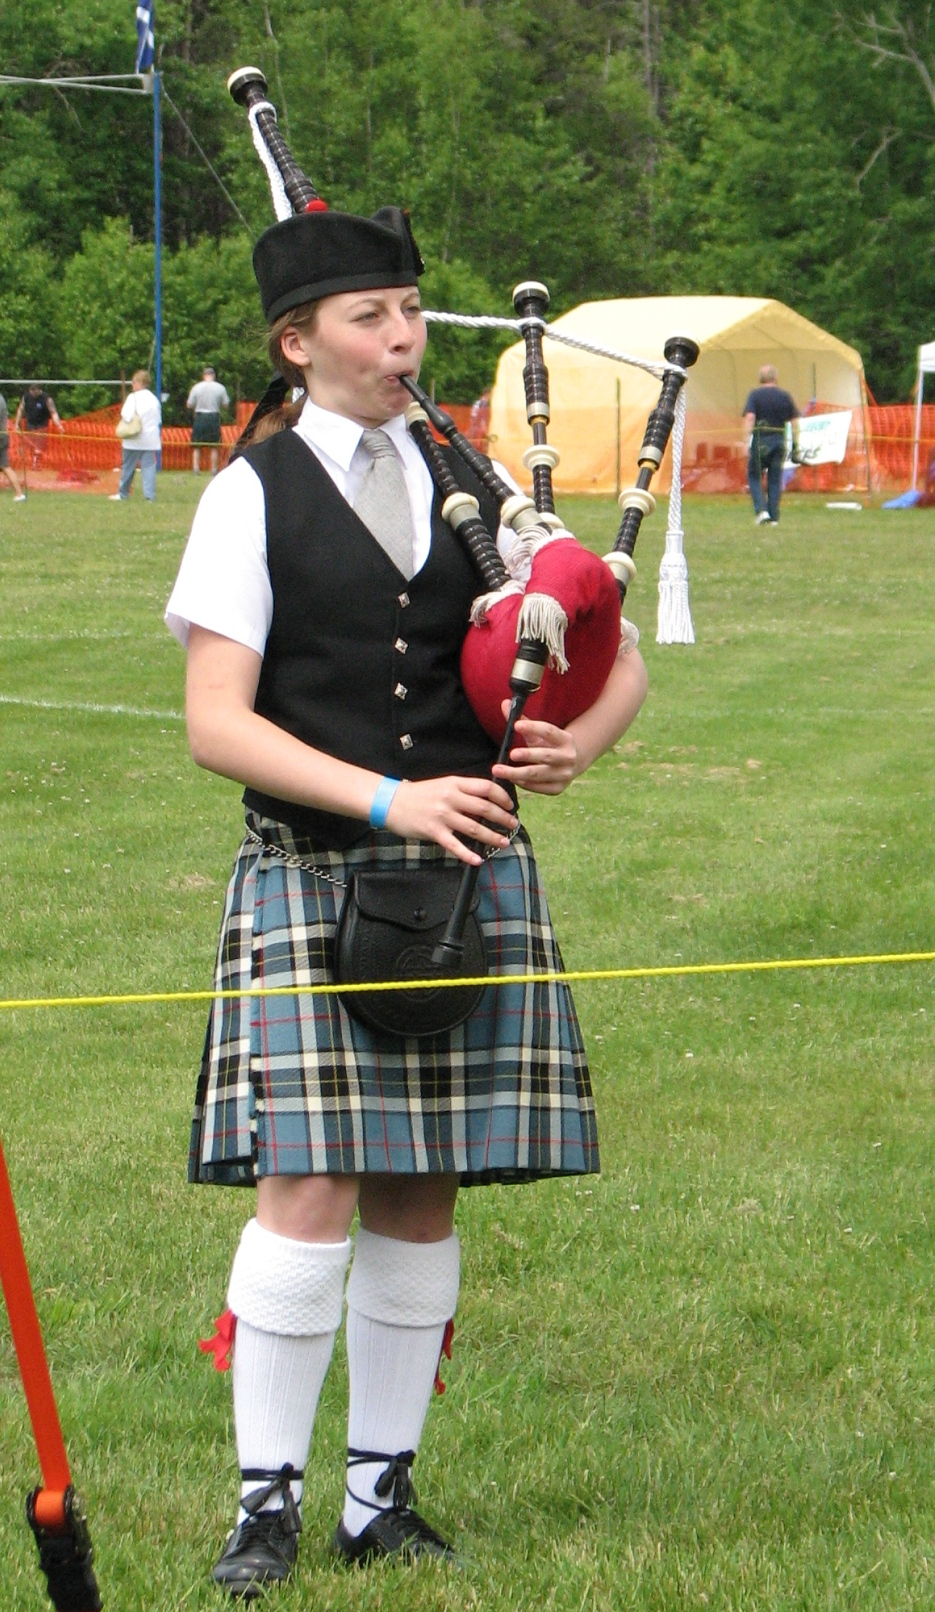 Brittany started on bagpipes in 2009 and has won several major awards including; the ACPBA Piobaireachd Challenge Pewter Medal along with the Scott Williams Piobaireachd Challenge Cup and black wood chanter. She was awarded the Sandy MacLean Memorial Trophy and also completed a week at the Gaelic College in Saint Ann's in Cape Breton, NS, made possible by a bursary from the ACPBA. In 2012 she won the ACPBA Piobaireachd Challenge copper medal and the Pipe Major William Magennis  Piobaireachd Challenge Cup. Brittany is a member of the Clan Thompson Pipe Band. She is a student of Madelyn Evans-Langlois who is her piping instructor and Pipe Major Scott Williams is her Piobaireachd instructor.